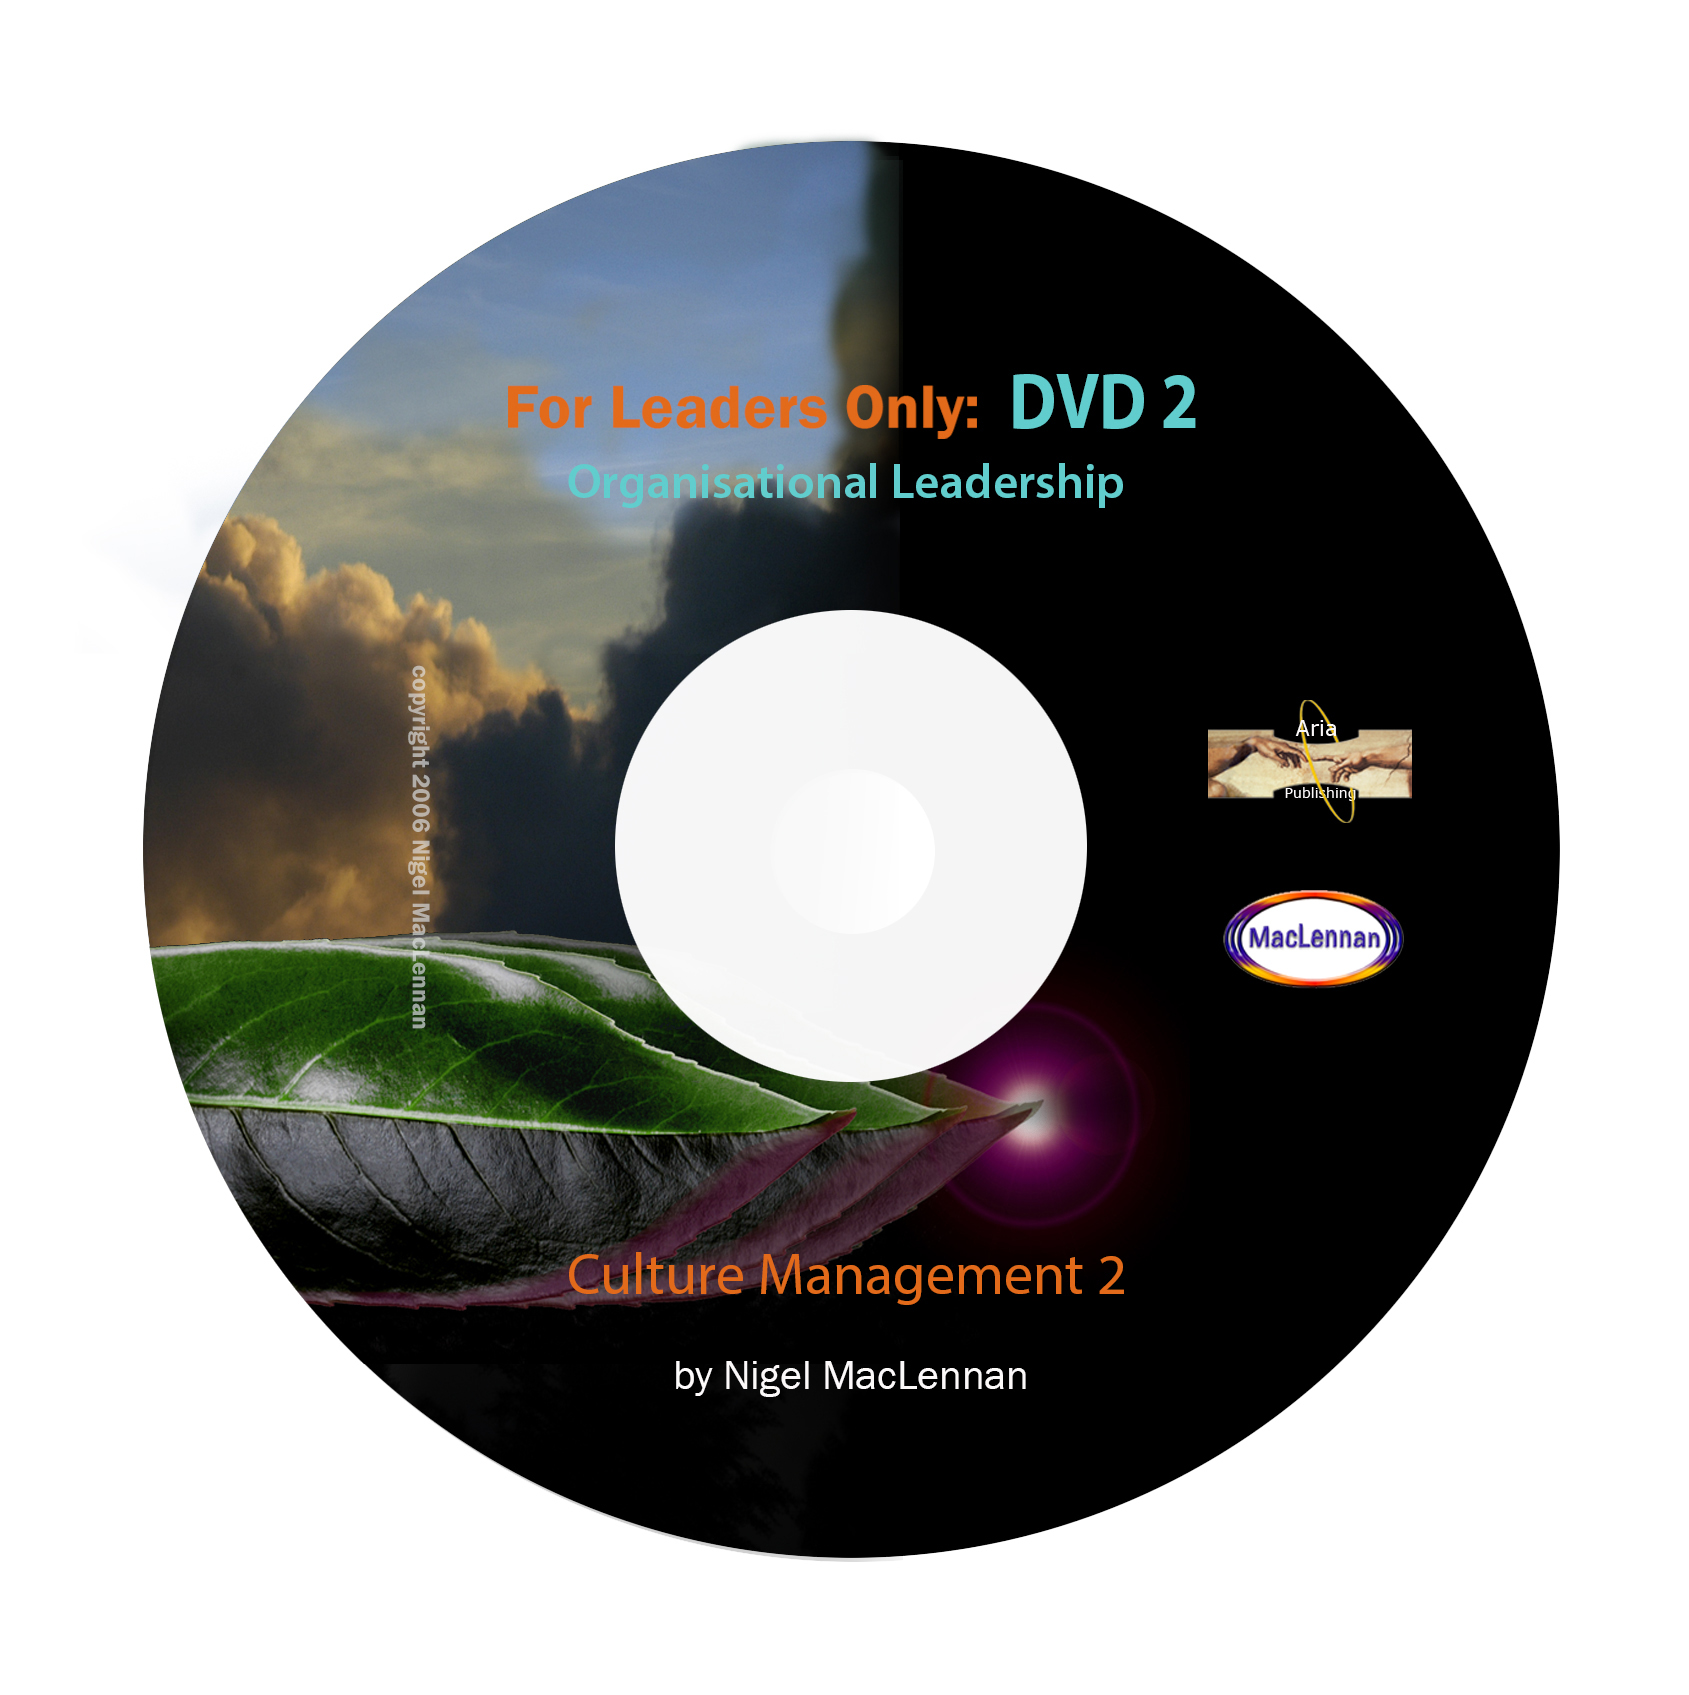 For Leaders Only - Culture Management 2 DVD